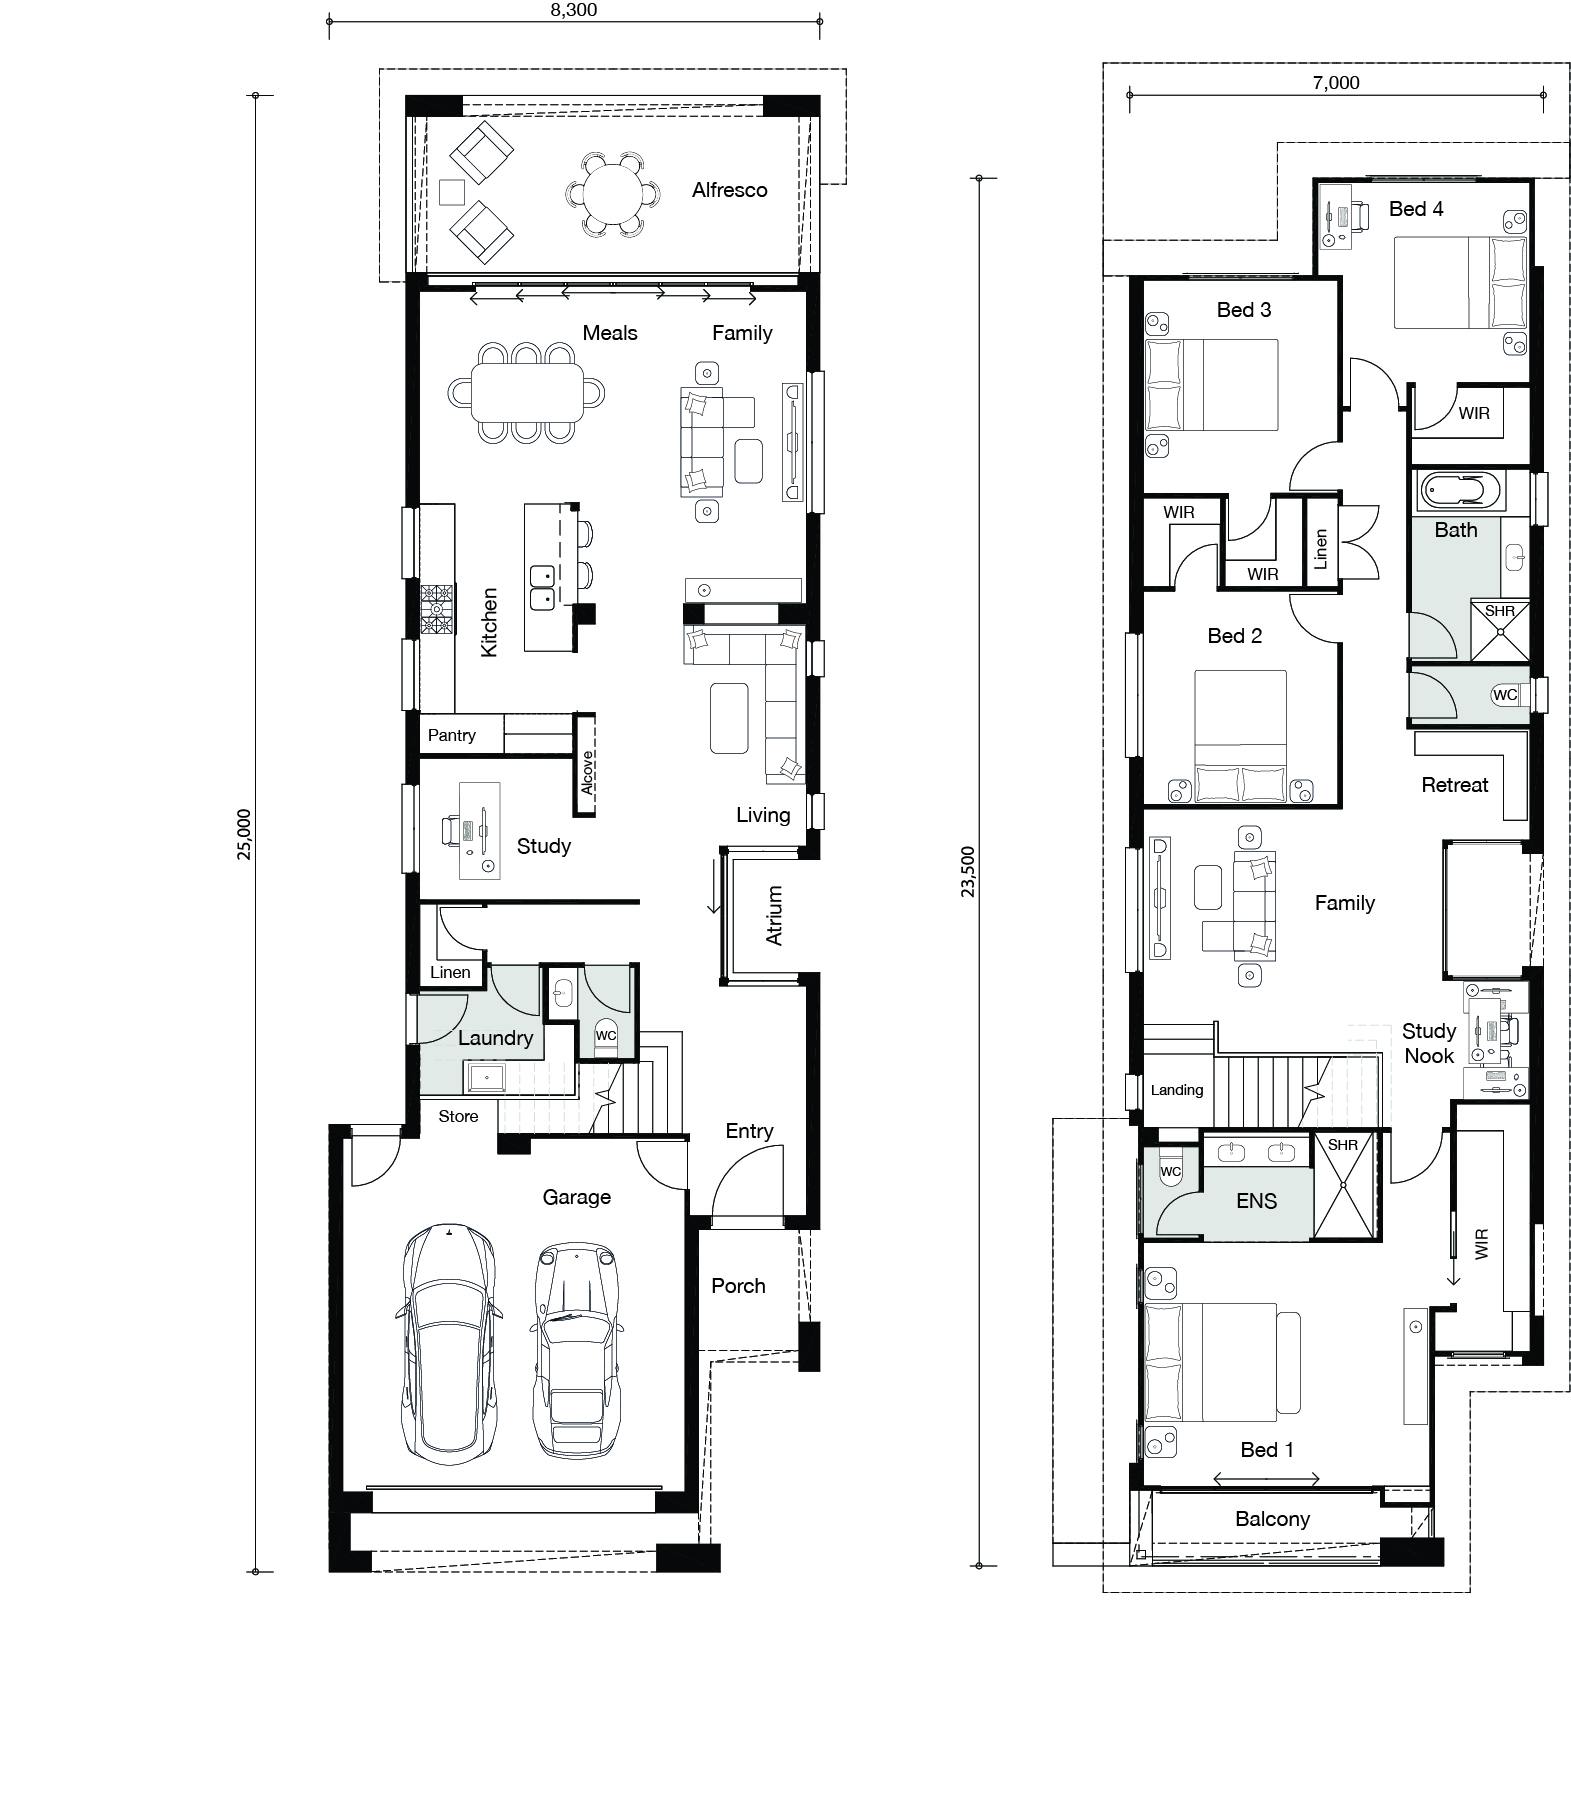 Floor plan for Palazzo home